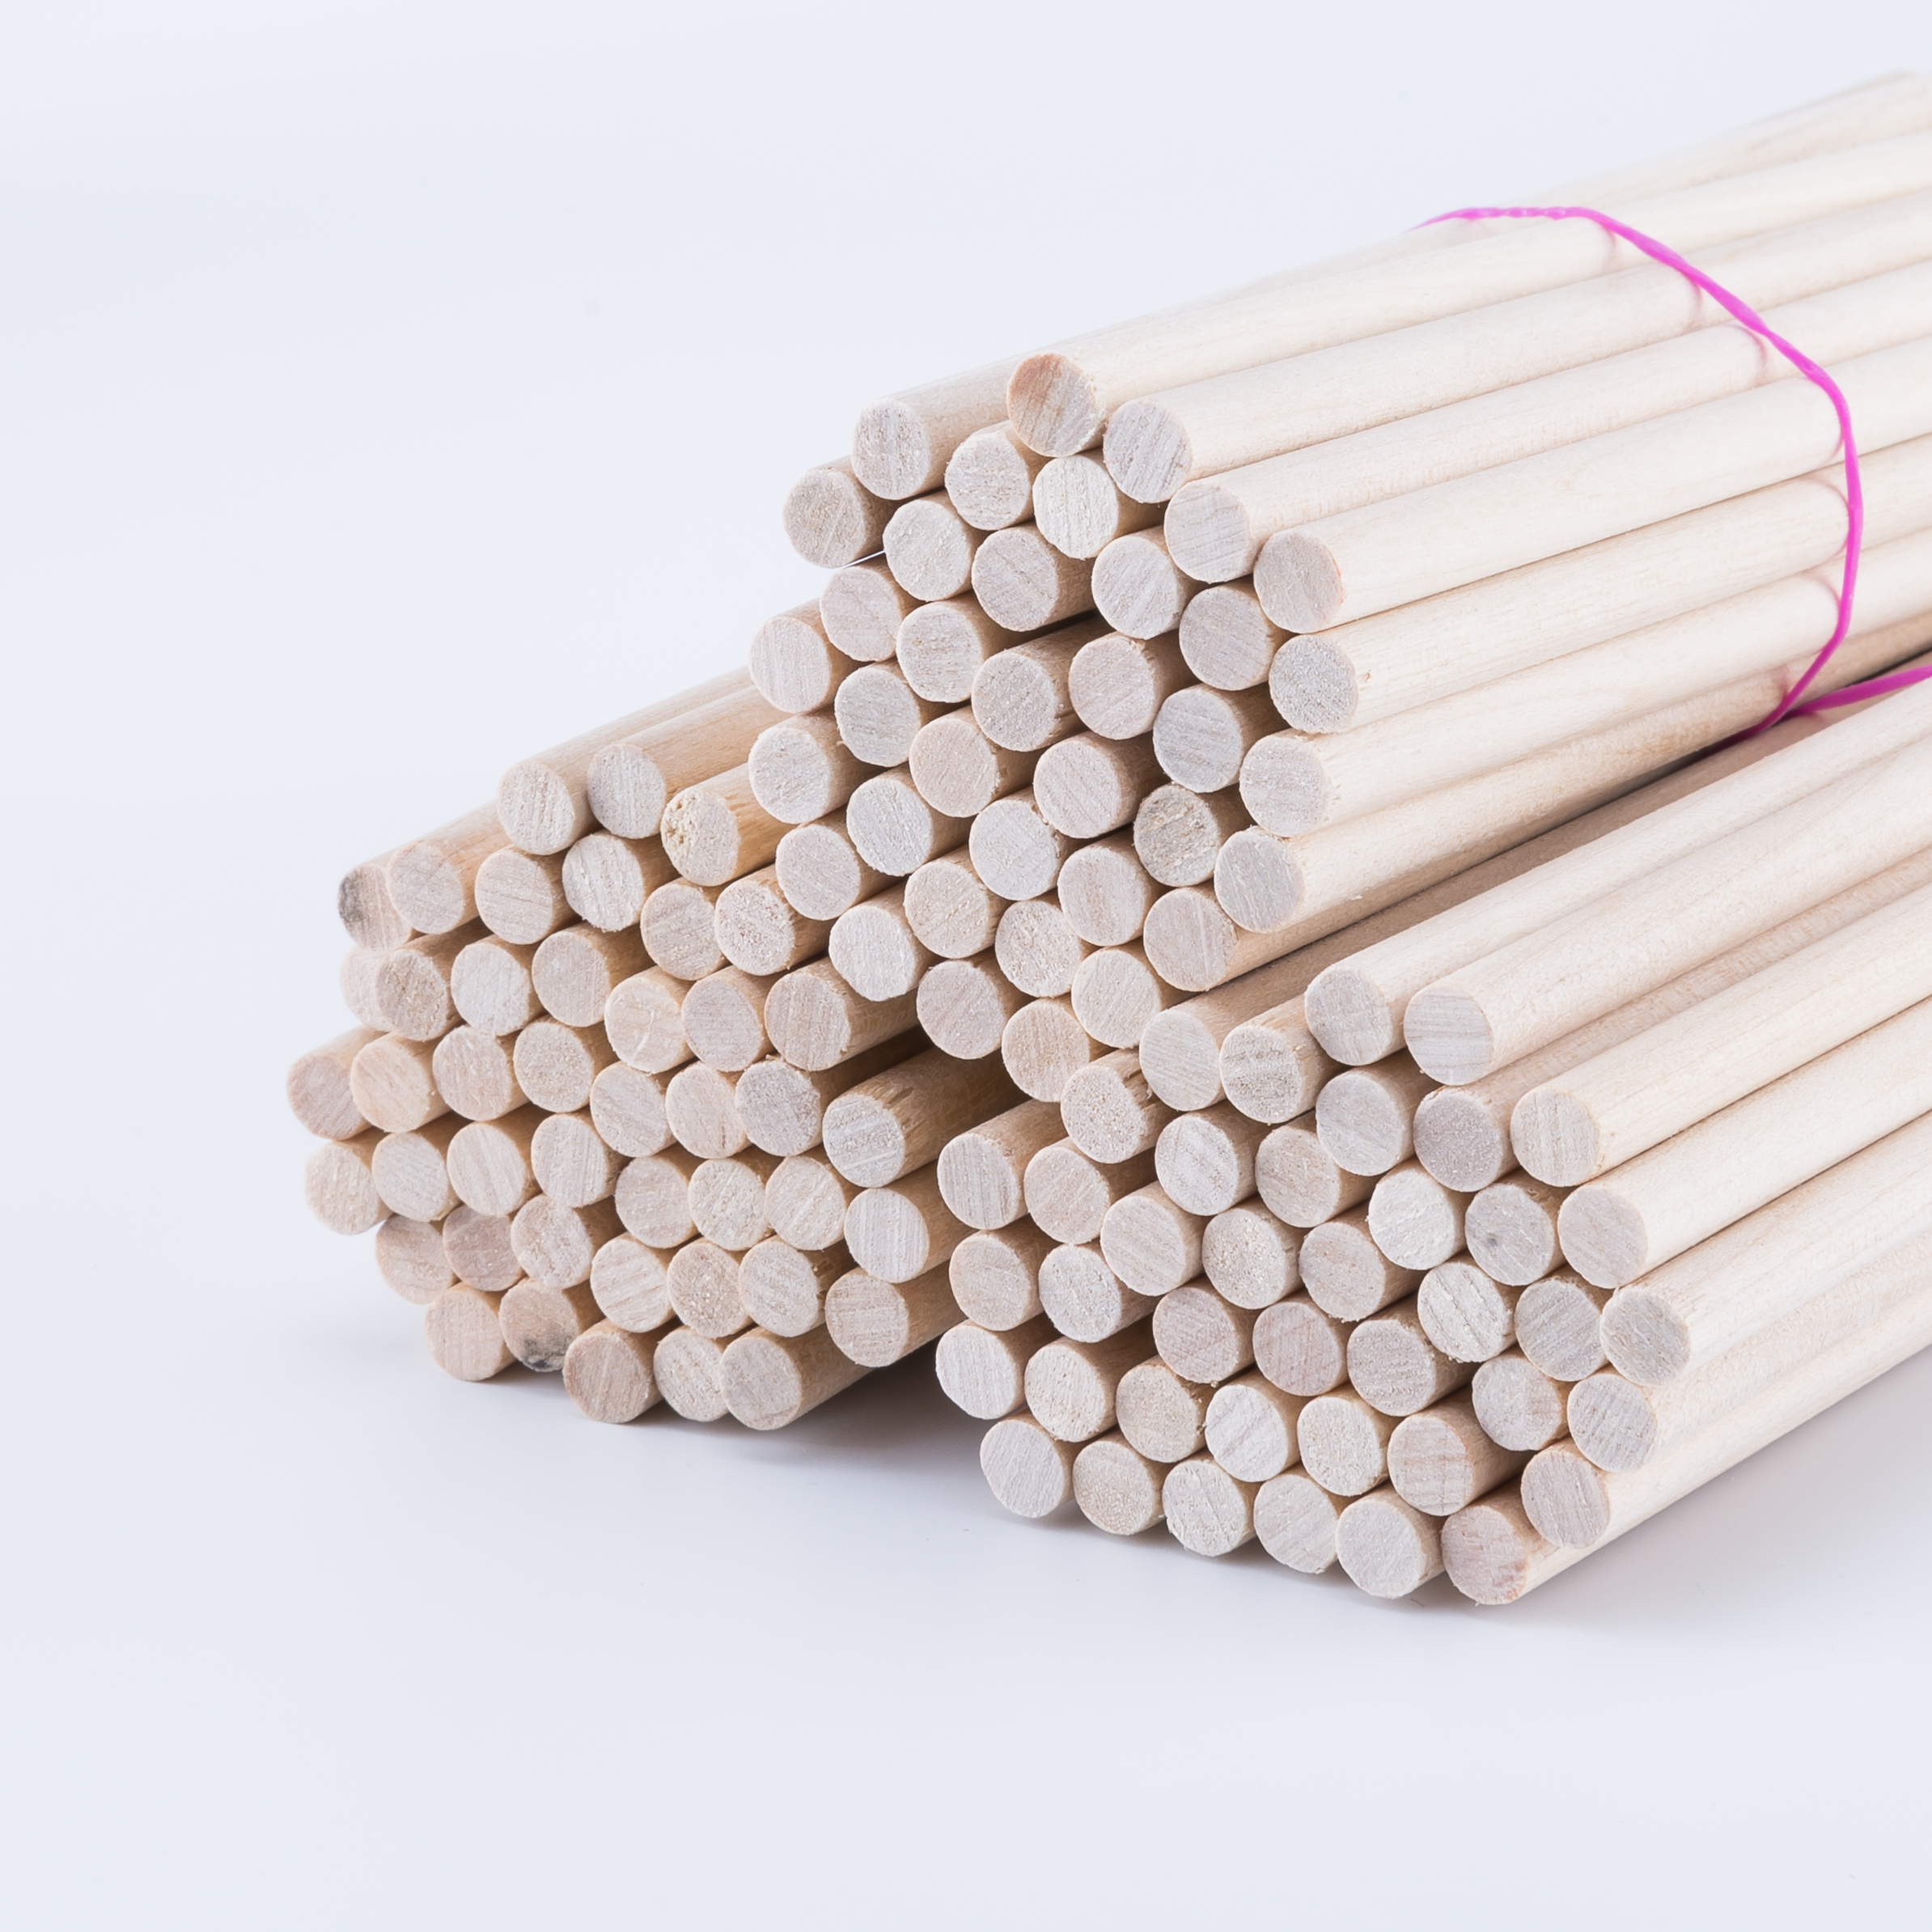 25/50Pcs 0.15cm Maple Round Wooden Rods Sticks Premium Durable Wooden Dowel For DIY Crafts Building Model DIY Food Craft